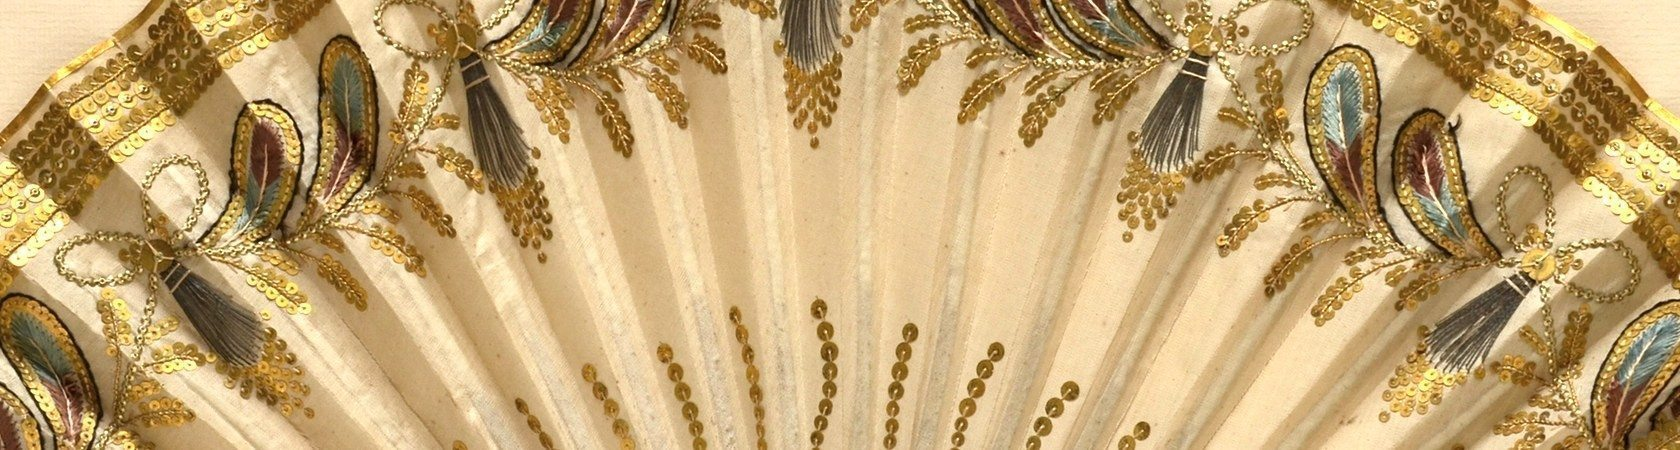 Embroidered silk fan c1800